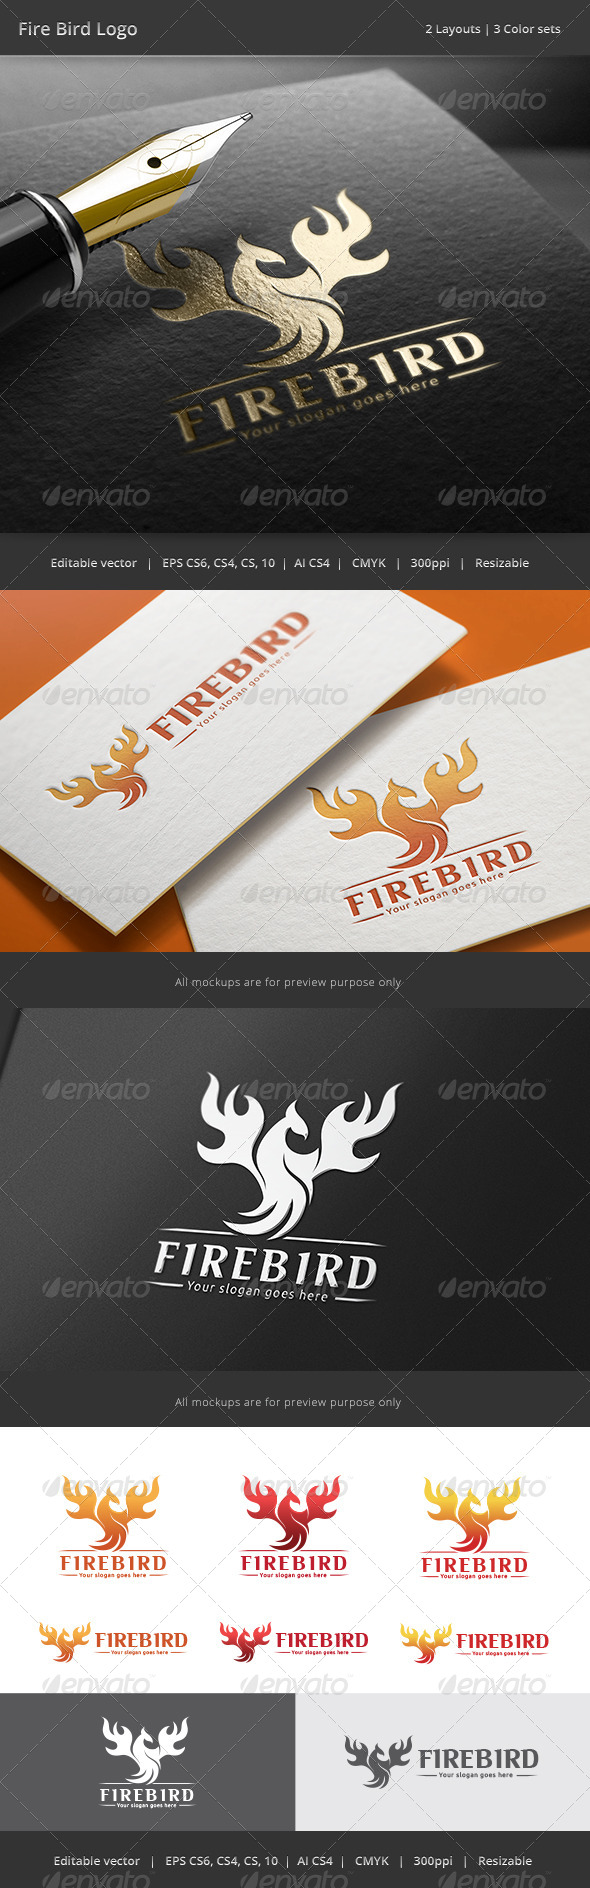 GraphicRiver Fire Bird Logo 8782844